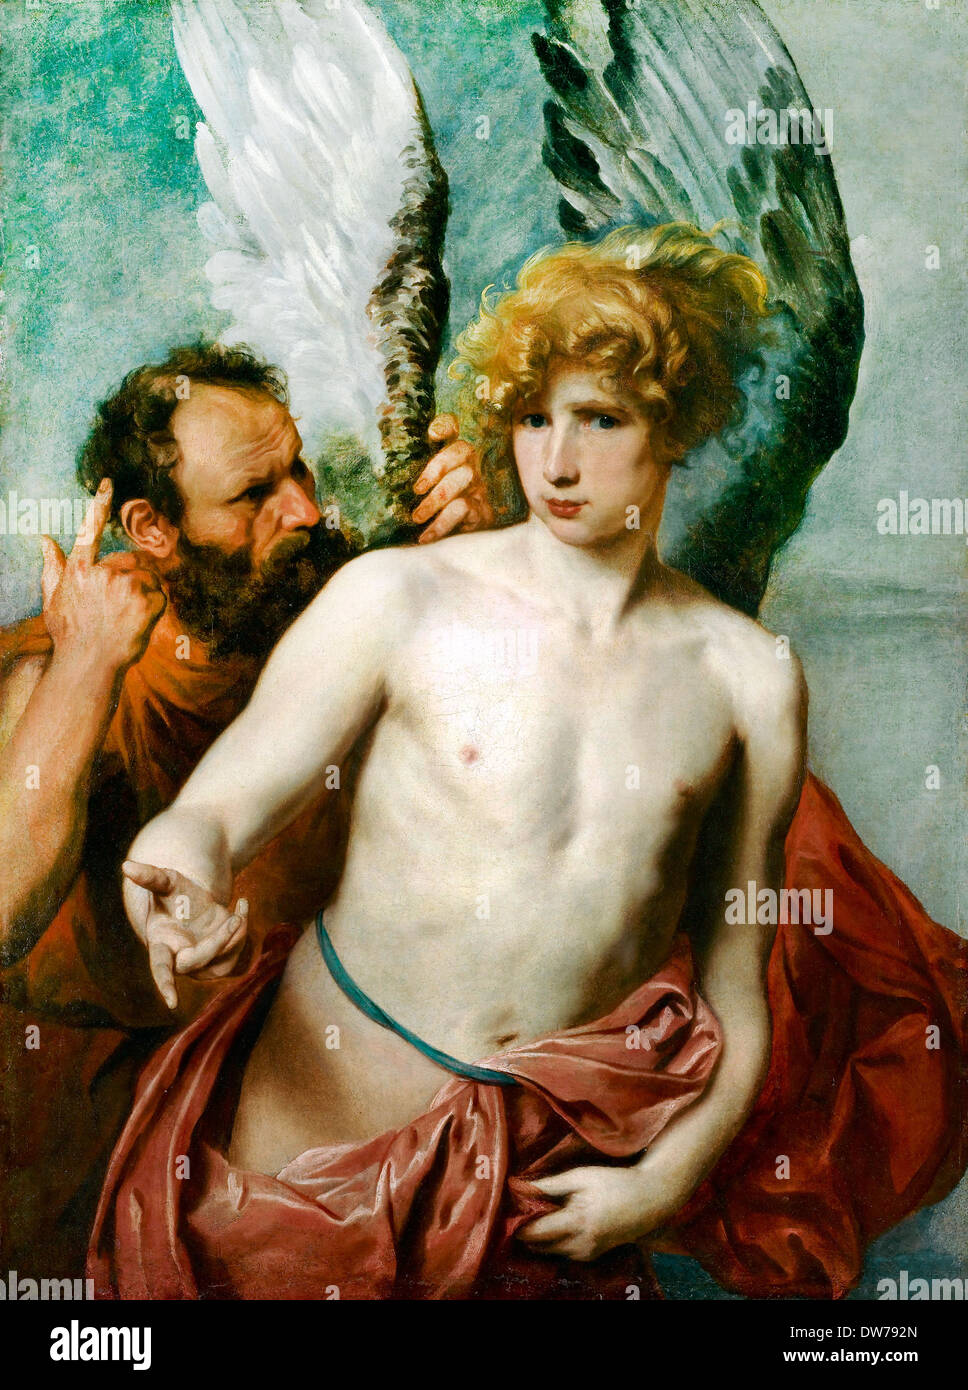 Anthony van Dyck, Daedalus and Icarus 1615-1625 Oil on canvas. Art Gallery of Ontario, Toronto, Canada. - Stock Image